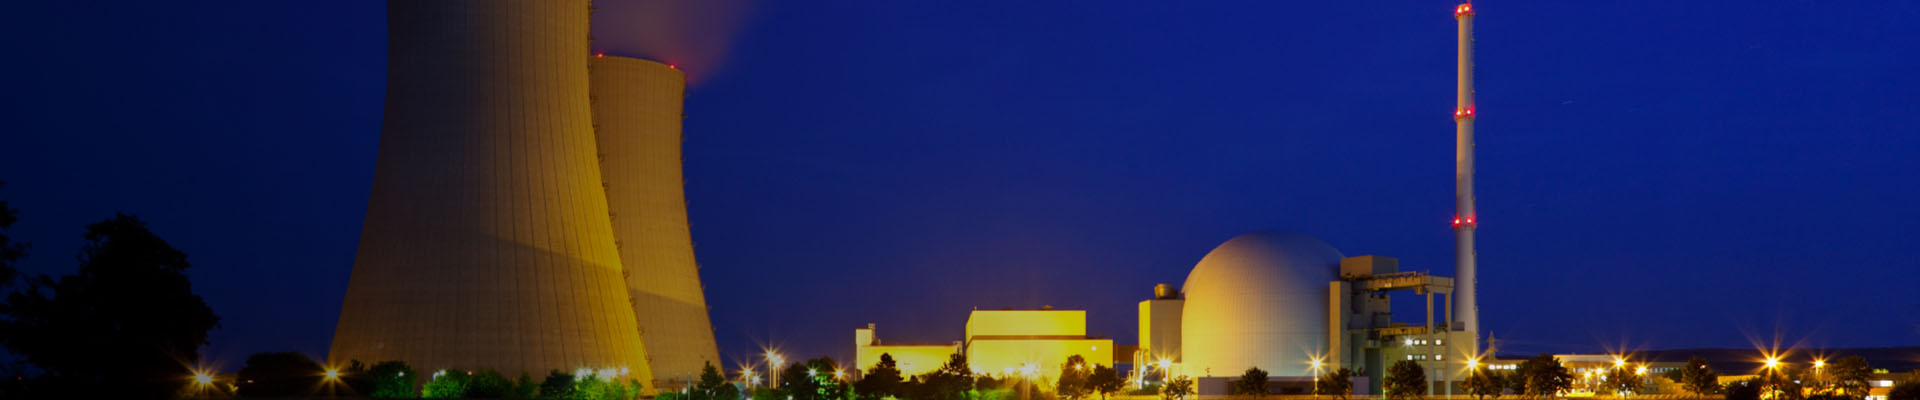 1920x400_gradient banner _nuclear facilities and equipment.jpg